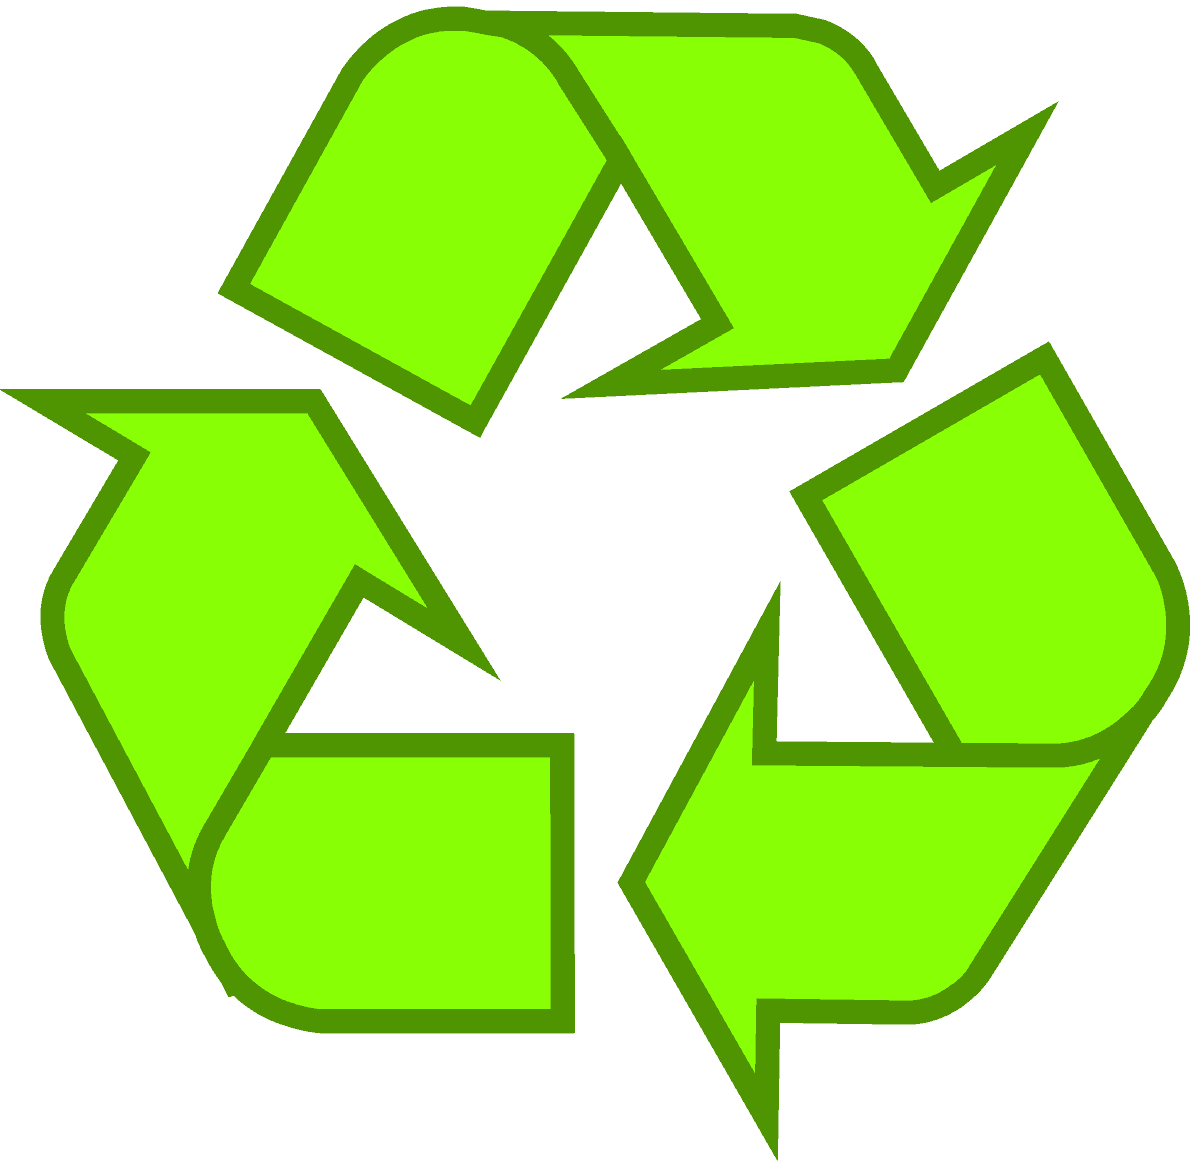 Download recycling symbol the original recycle logo recycling symbol icon outline solid light green buycottarizona Choice Image